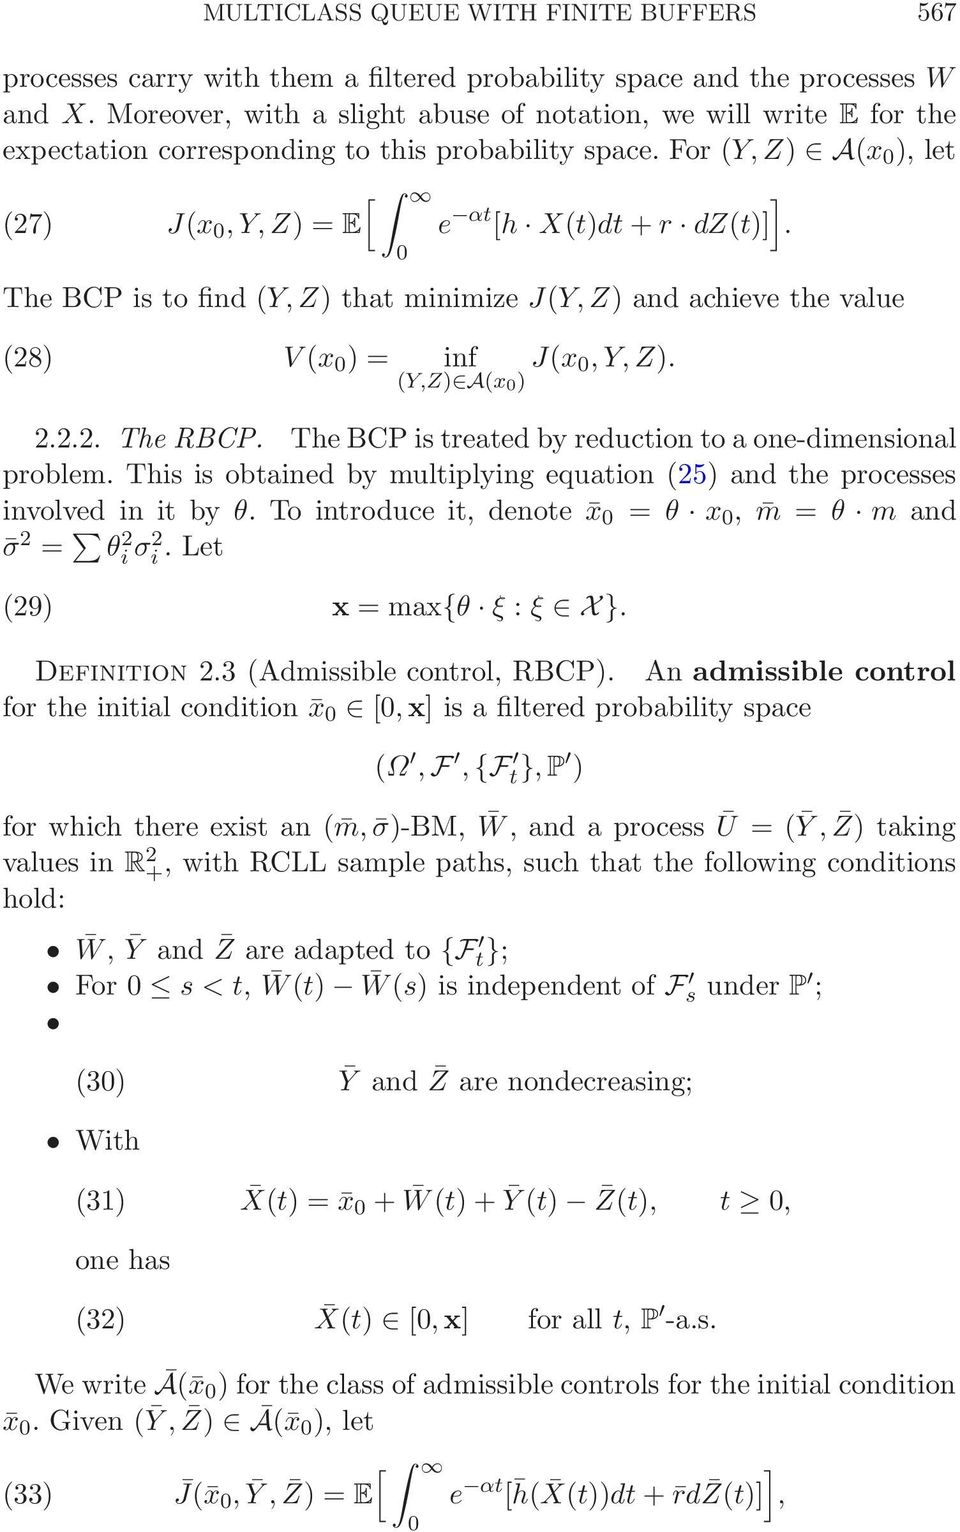 The BCP is to find (Y,Z) that minimize J(Y,Z) and achieve the value (28) V(x ) = inf (Y,Z) A(x ) J(x,Y,Z). 2.2.2. The RBCP. The BCP is treated by reduction to a one-dimensional problem.